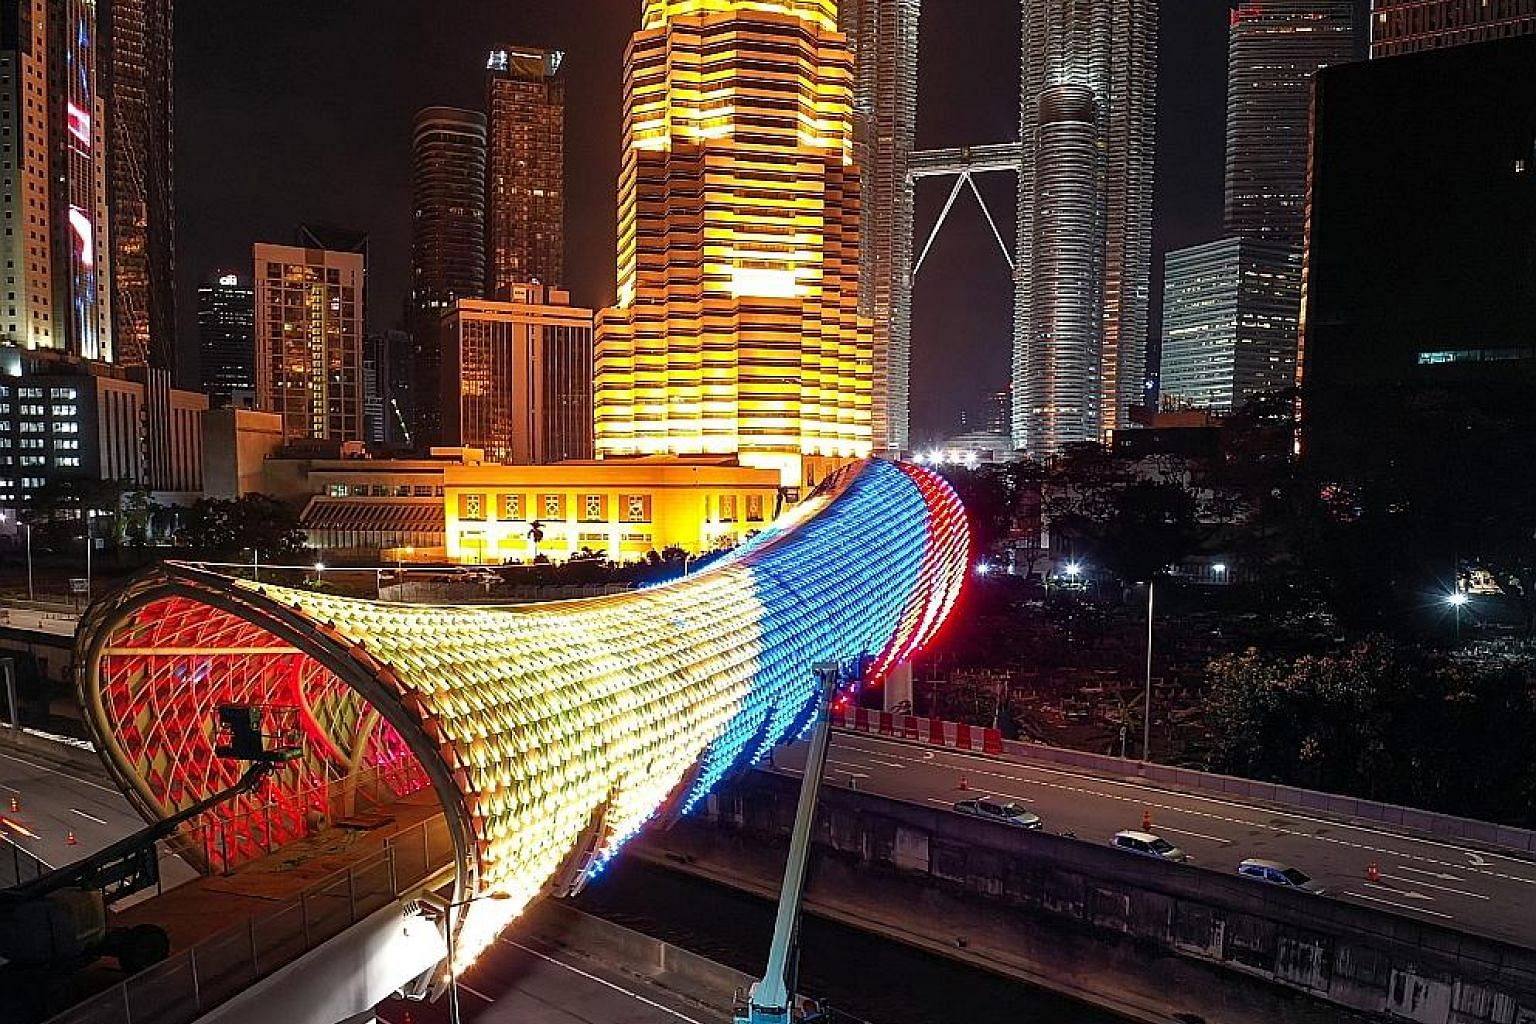 The Saloma Link, named after the wife of legendary Malay actor P. Ramlee, links Kampung Baru, a historic Malay village in Kuala Lumpur, and a major road near the Petronas Twin Towers.